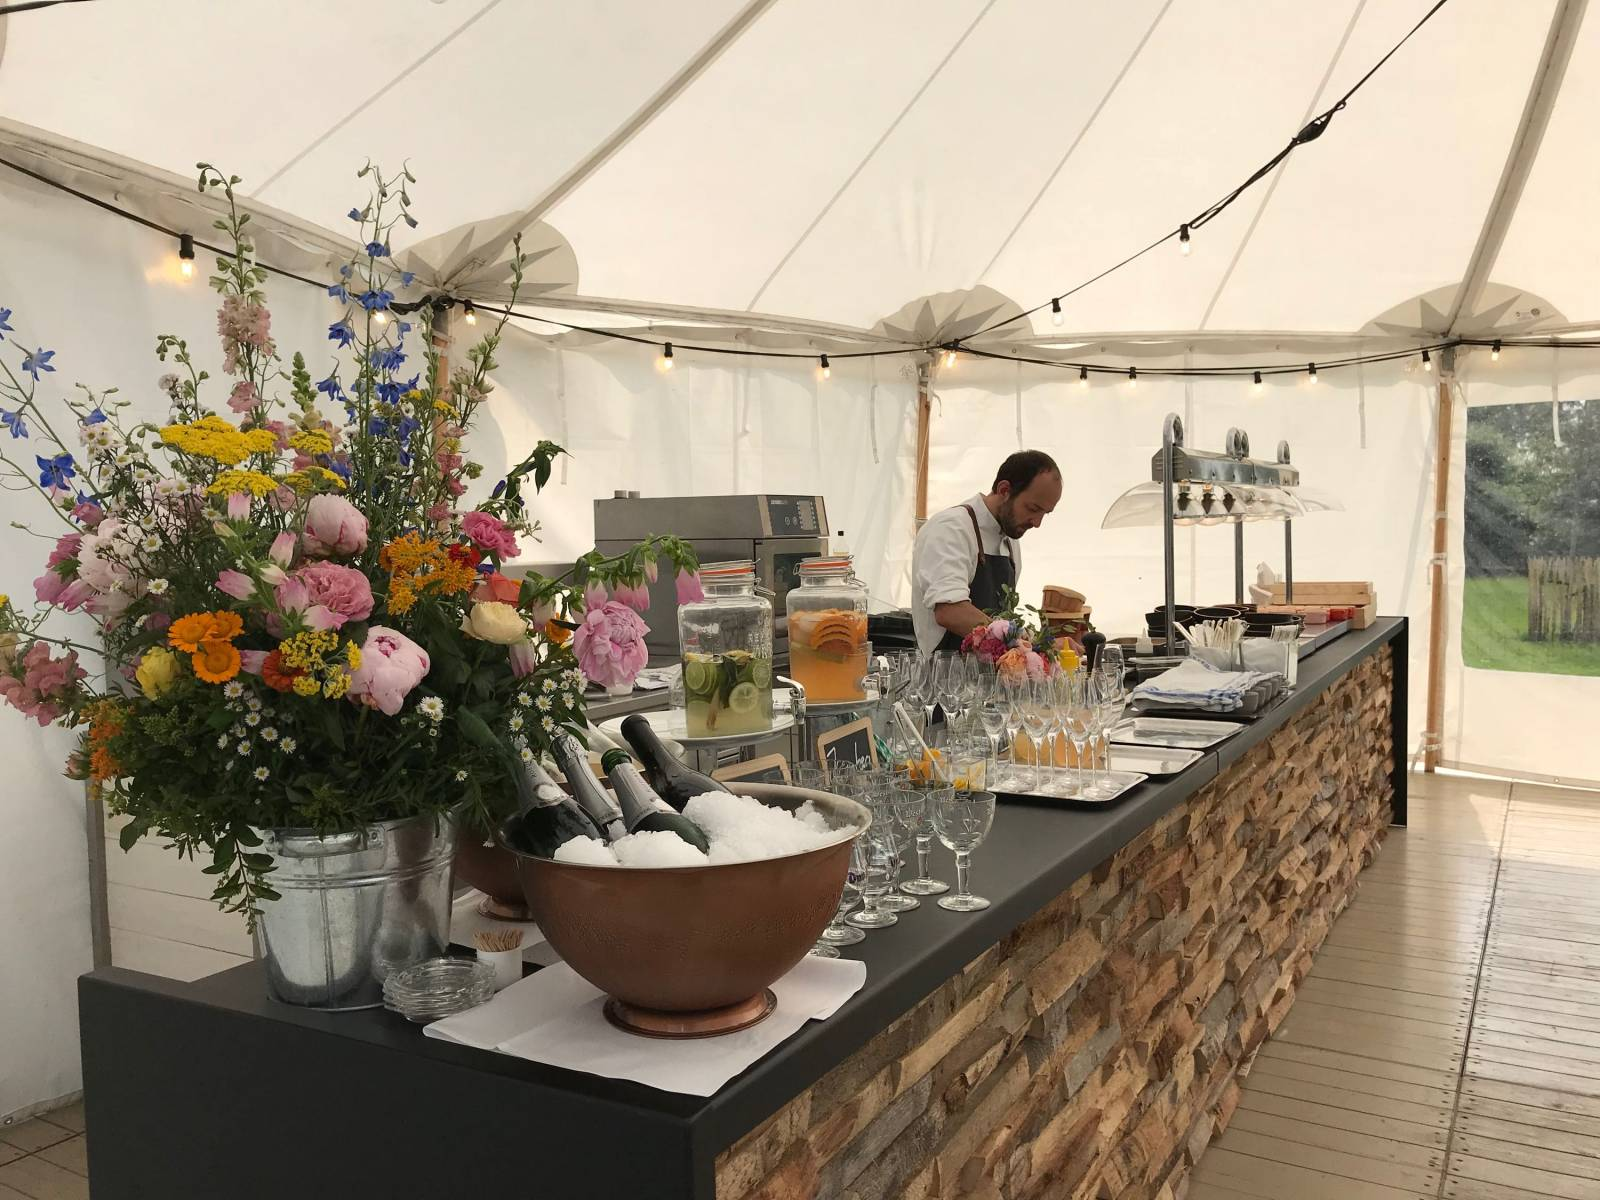 Hendrickx feesten - Catering - Traiteur - Cateraar - House of Weddings - 14